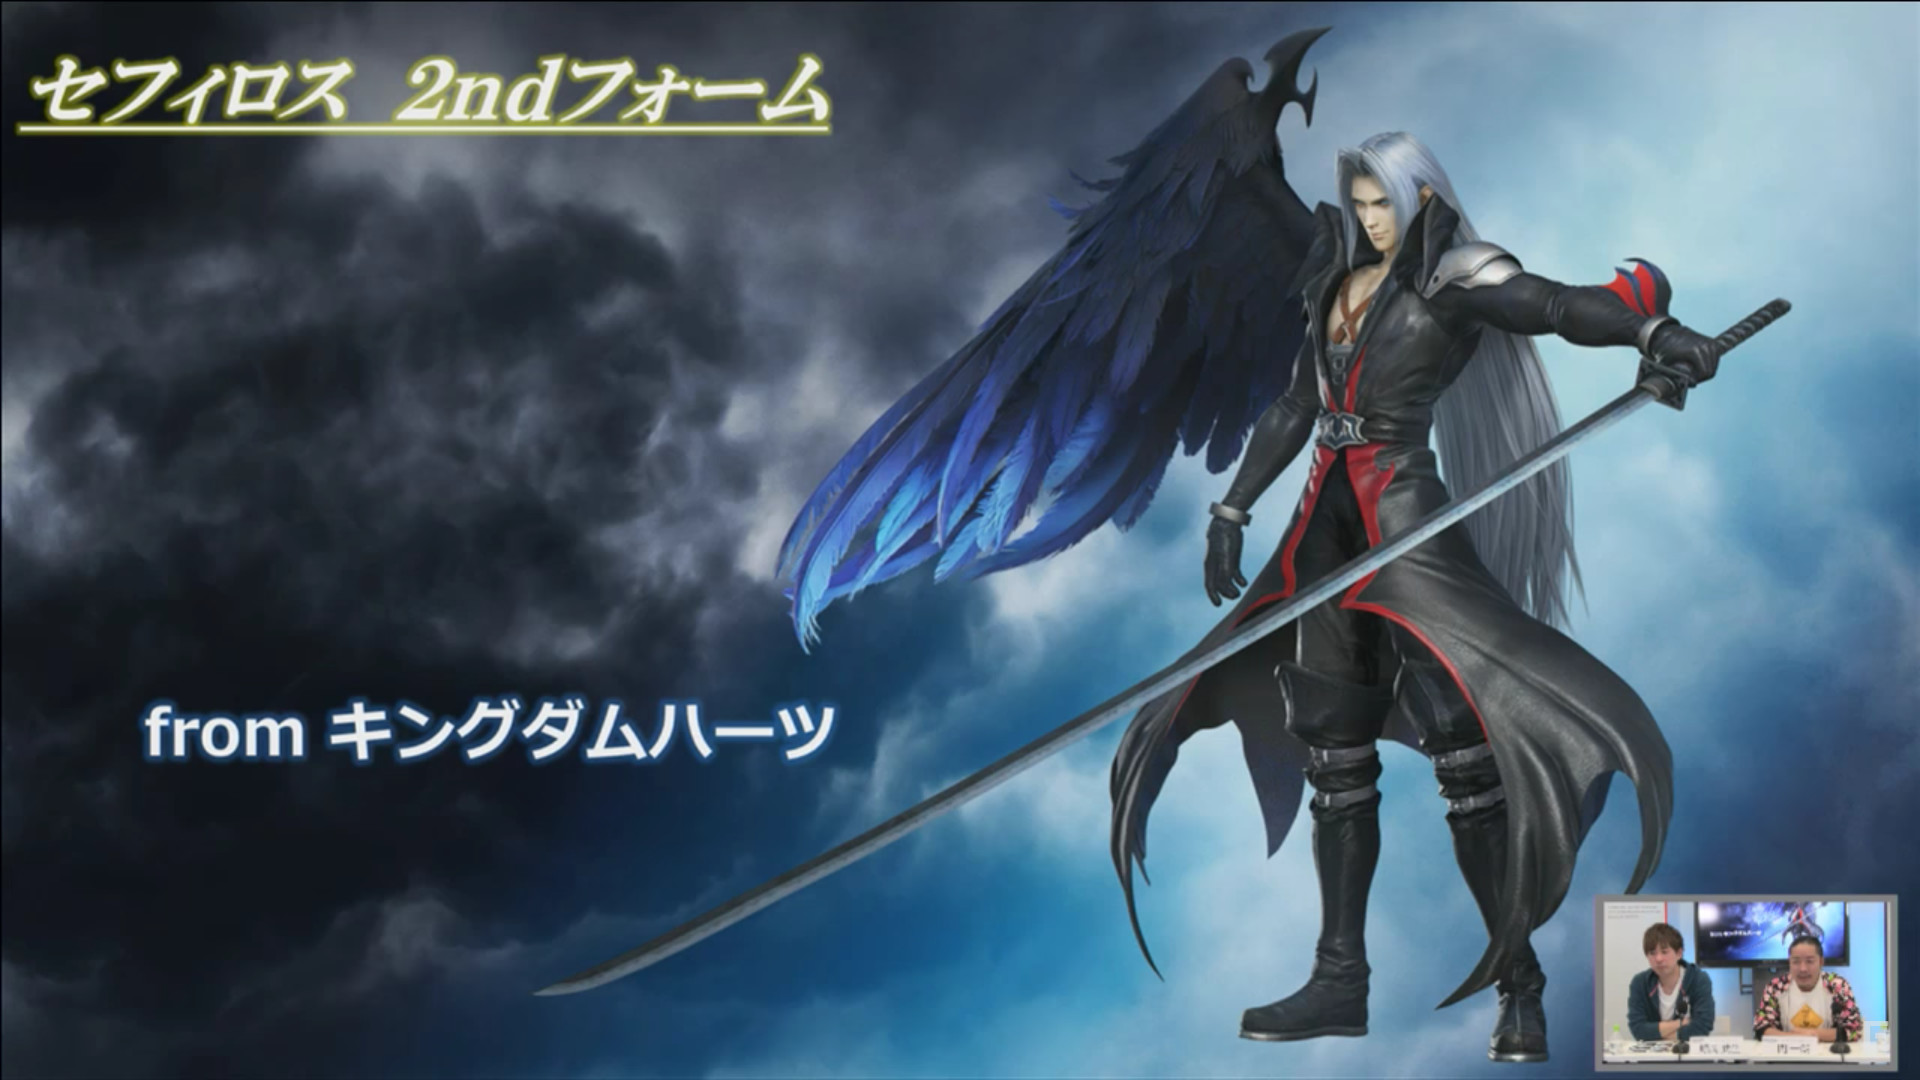 Much like Dissidia 012 Final Fantasy, the Arcade release of Dissidia: Final  Fantasy features costume changes for the playable characters.